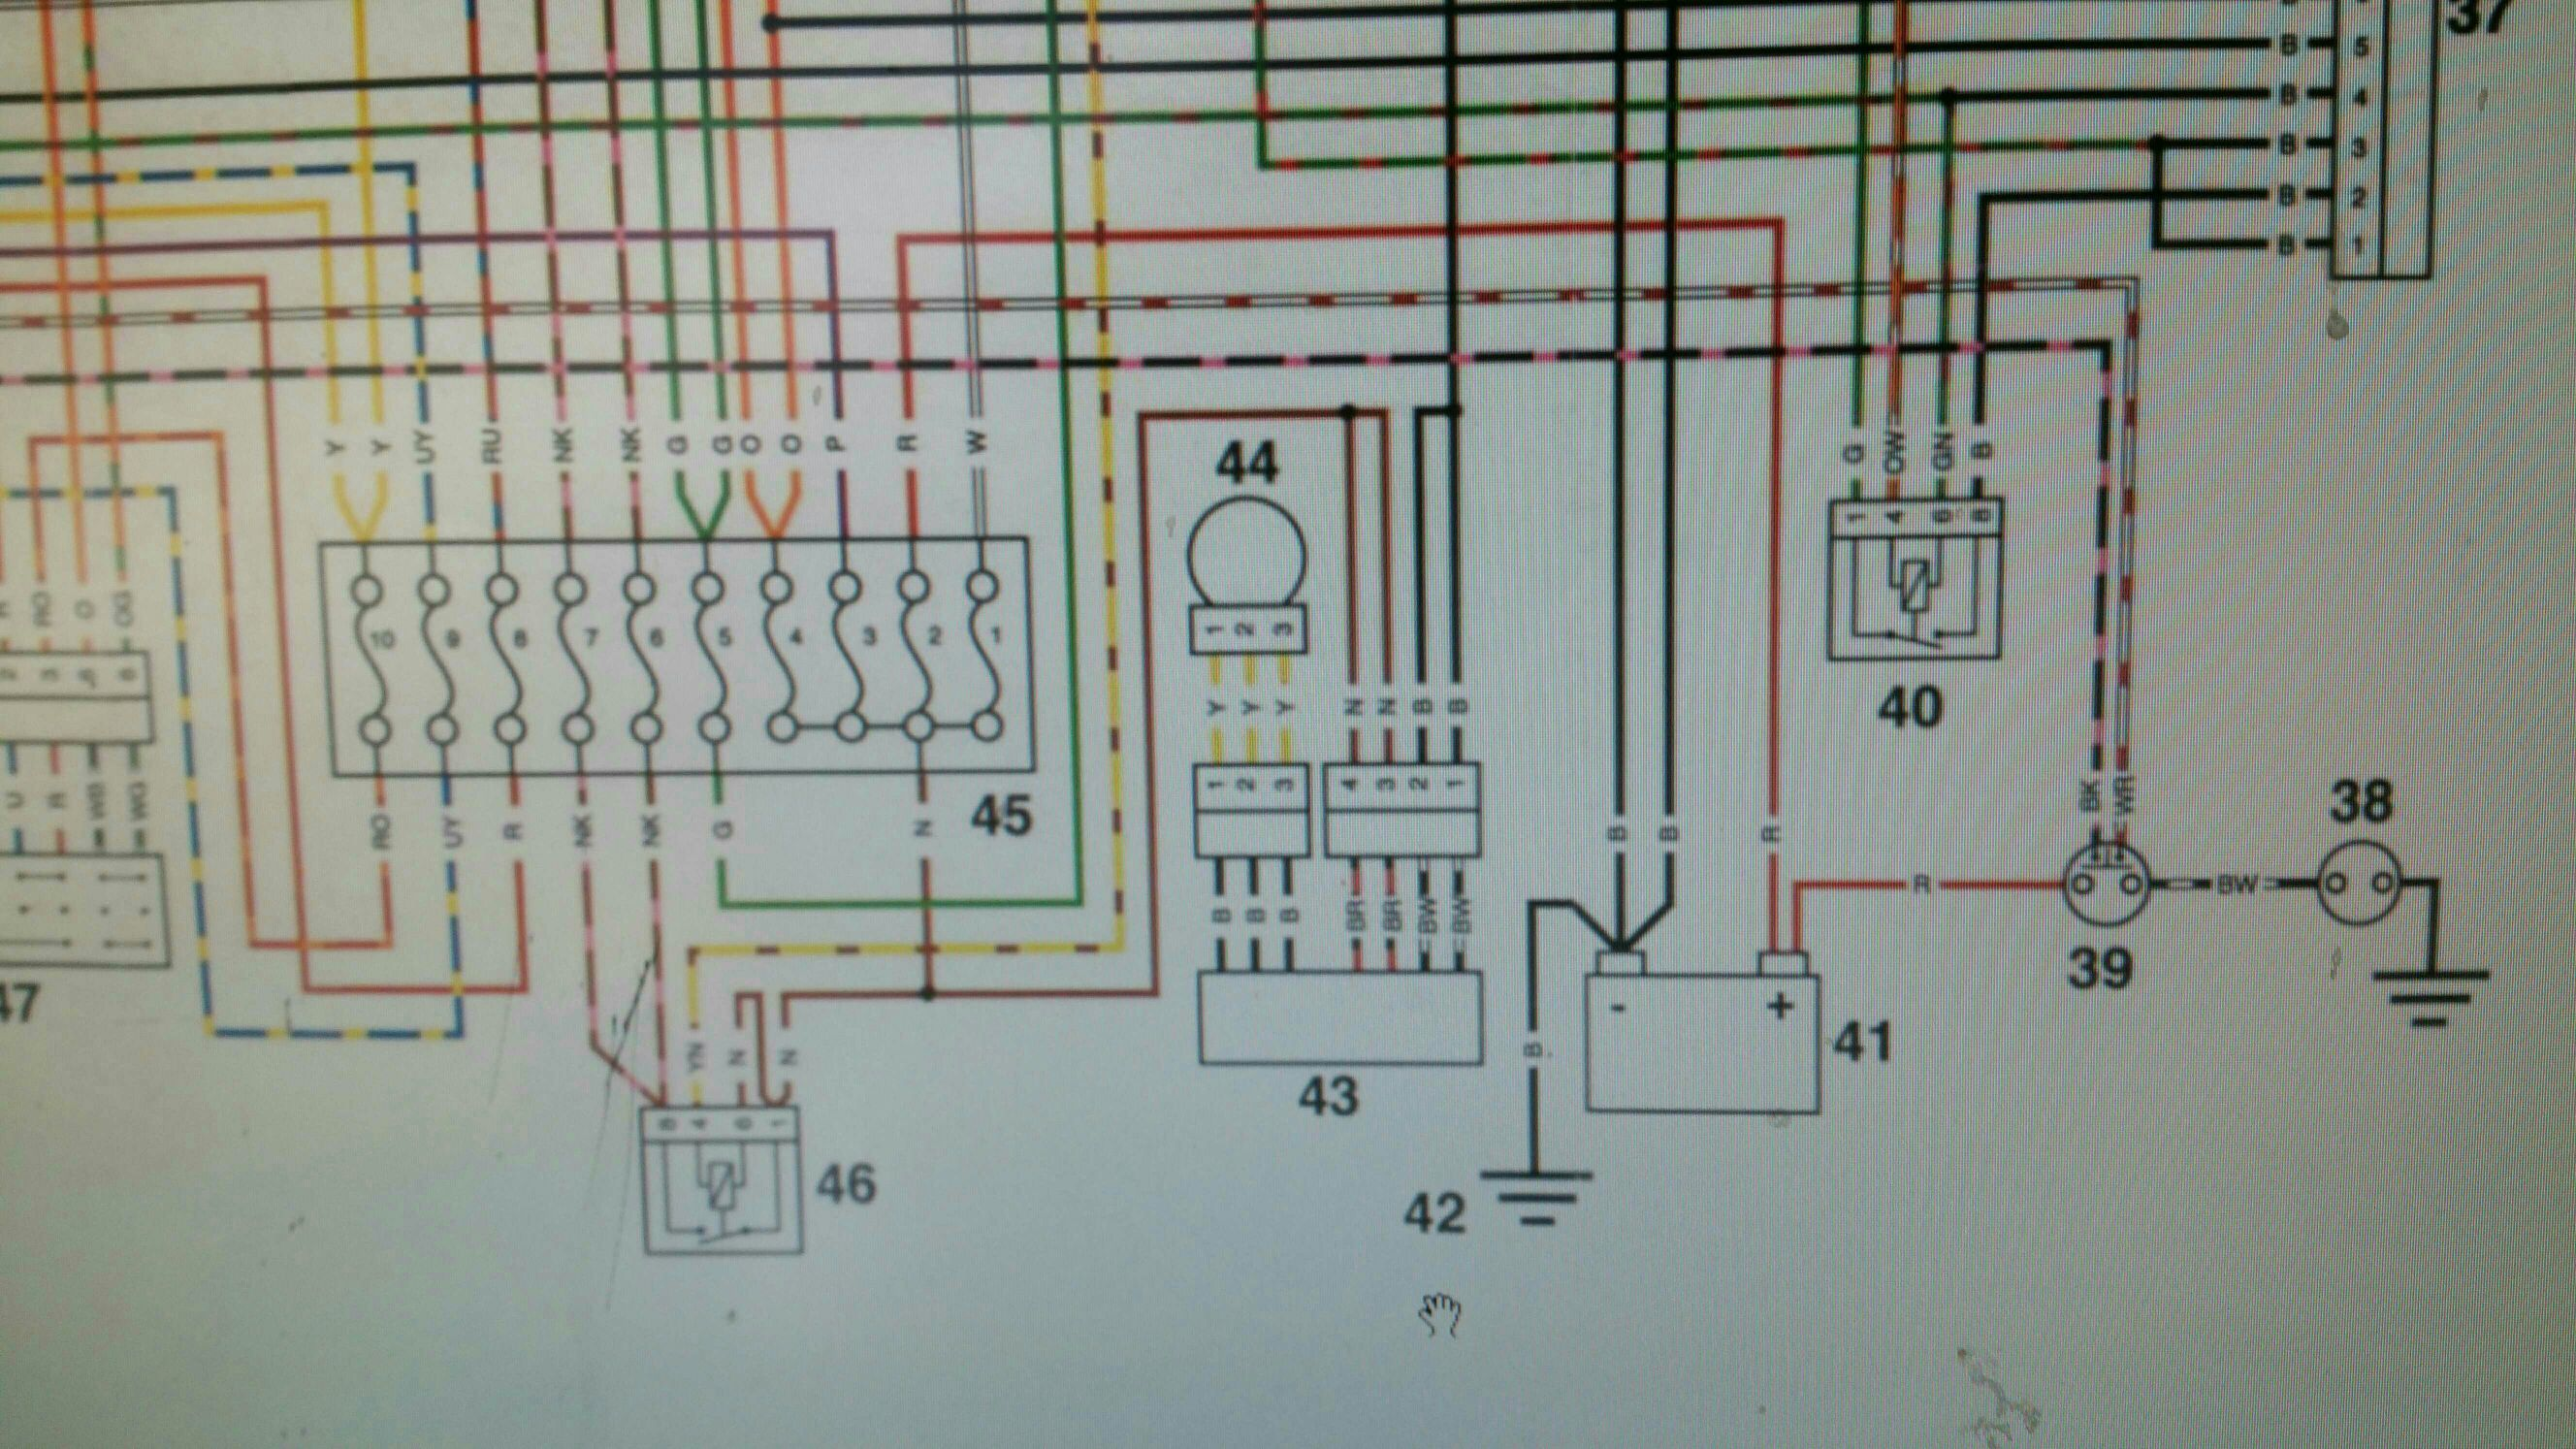 Sparx wiring diagram for triumph circuit wiring and diagram hub triumph legend wiring diagram free download wiring diagram xwiaw rh xwiaw us triumph tr6 wiring asfbconference2016 Choice Image